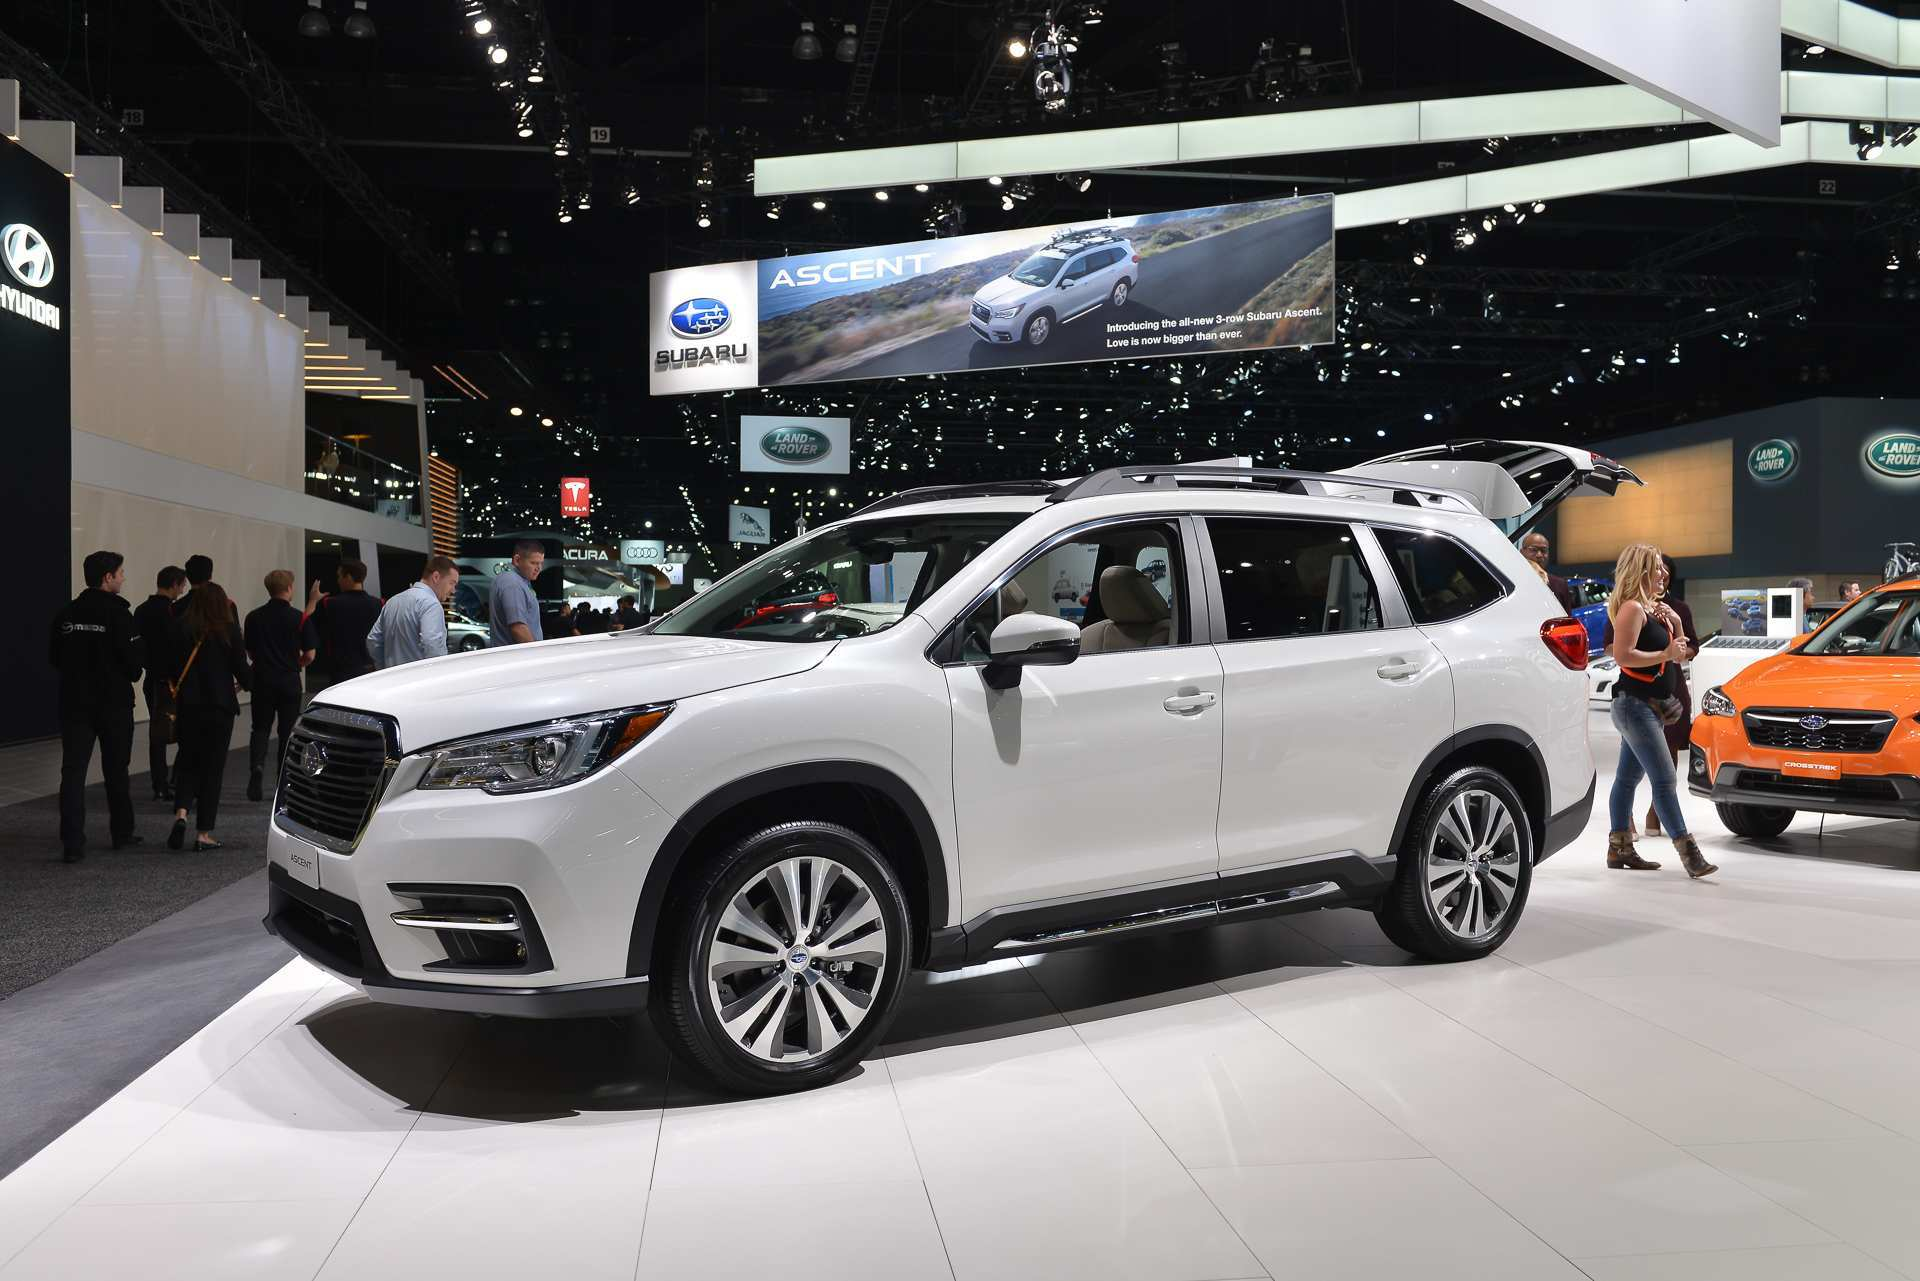 14 Concept of 2019 Subaru Ascent Price Model by 2019 Subaru Ascent Price